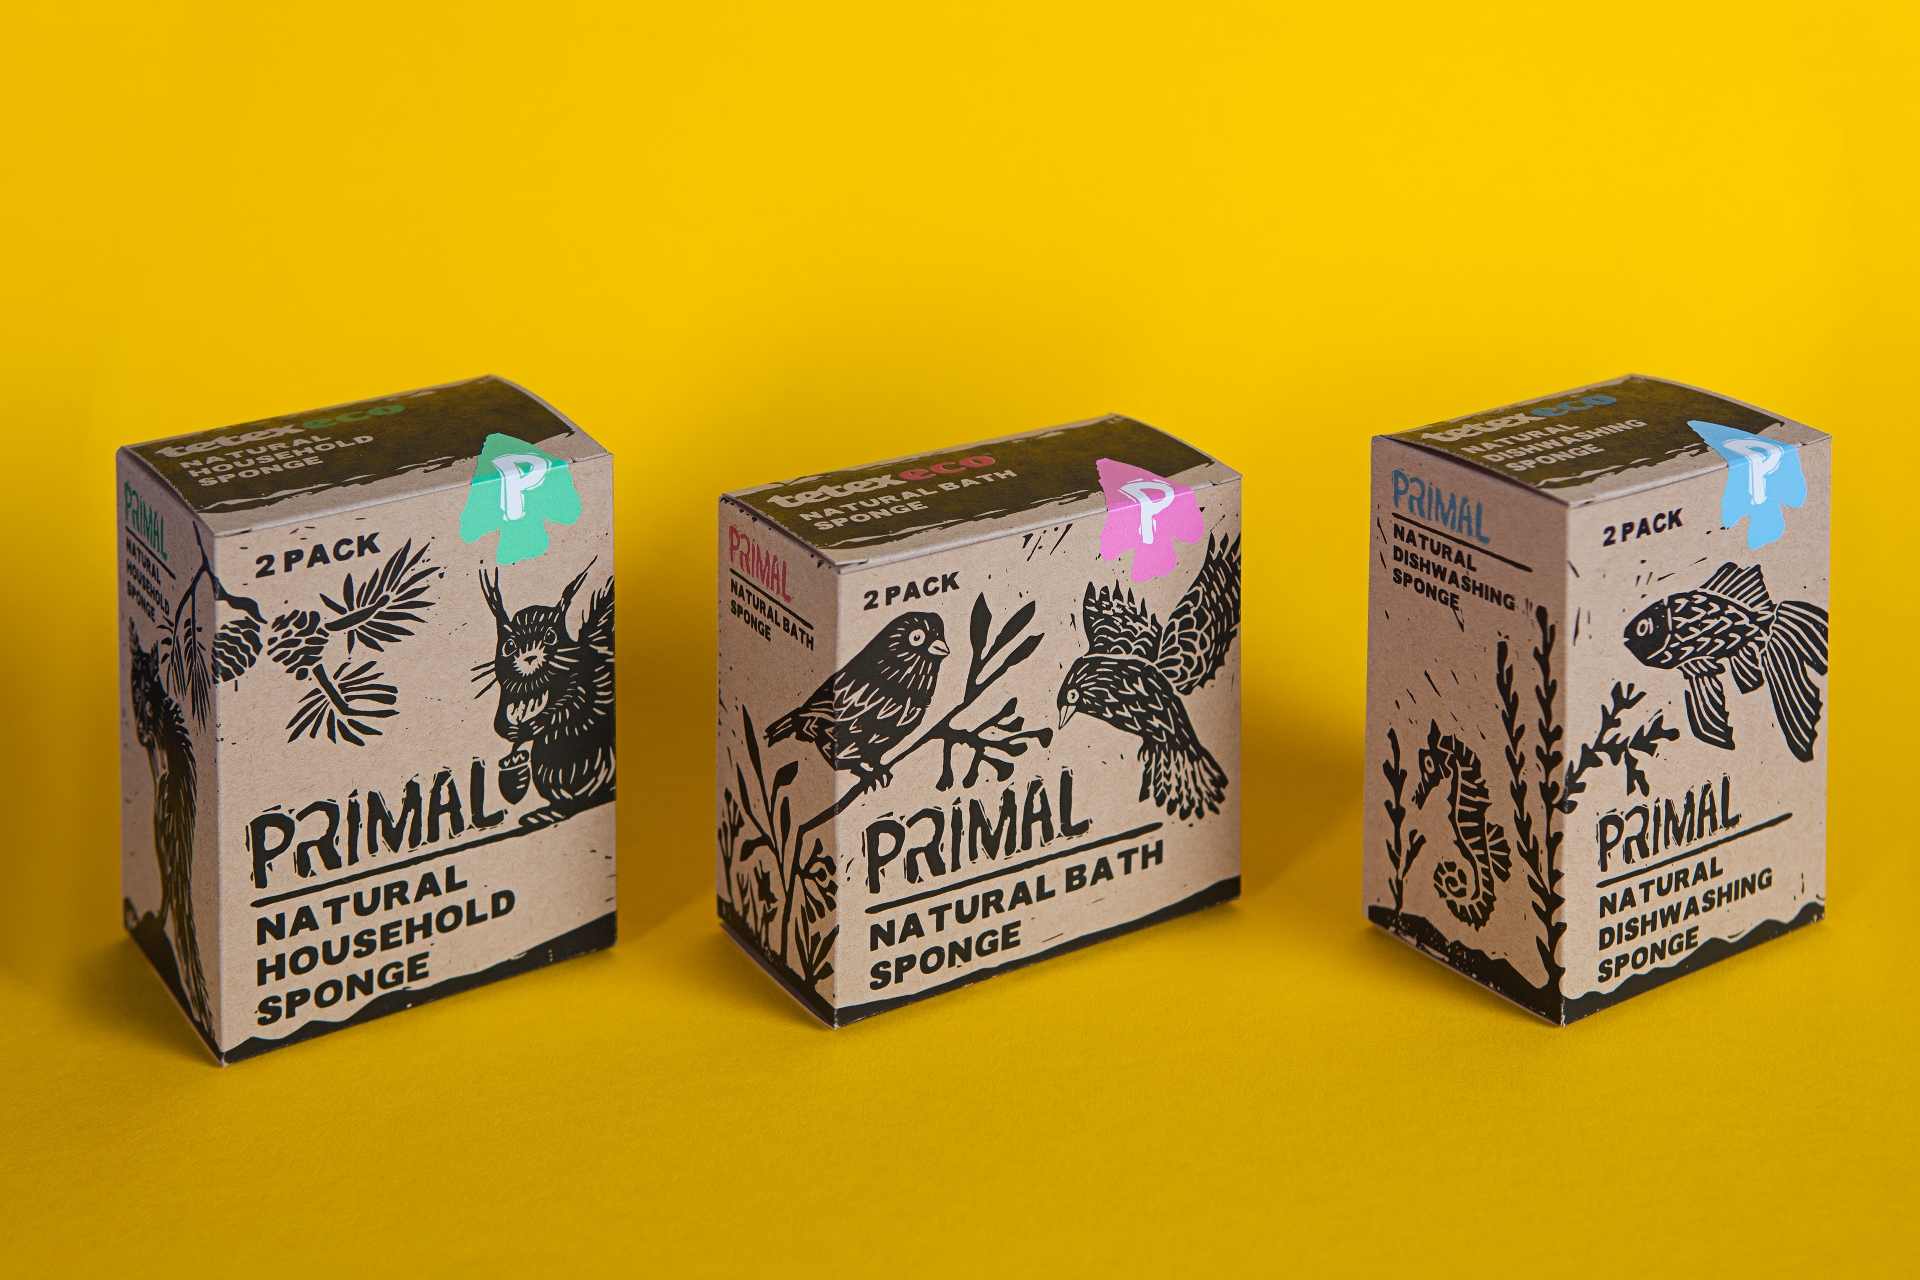 Packaging Design for Eco-Friendly and Biodegradable PRIMAL Sponges